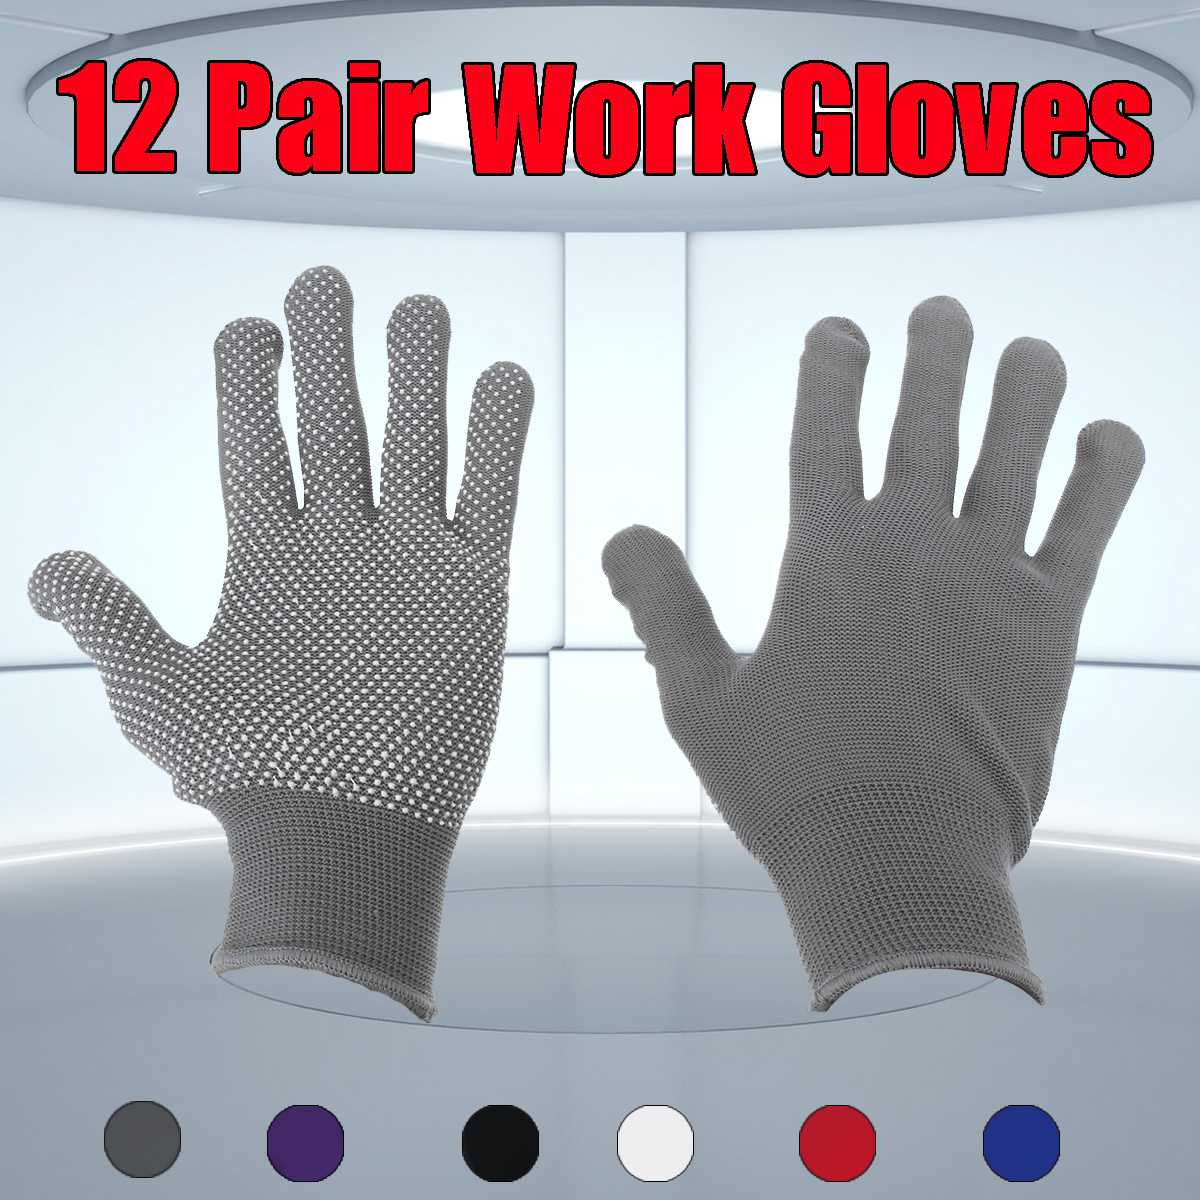 12 Pairs Workplace Safety Gloves Hand Protector Full Finger Non-slip Labor Insurance Working Gloves Men Women Motorcycle Gloves